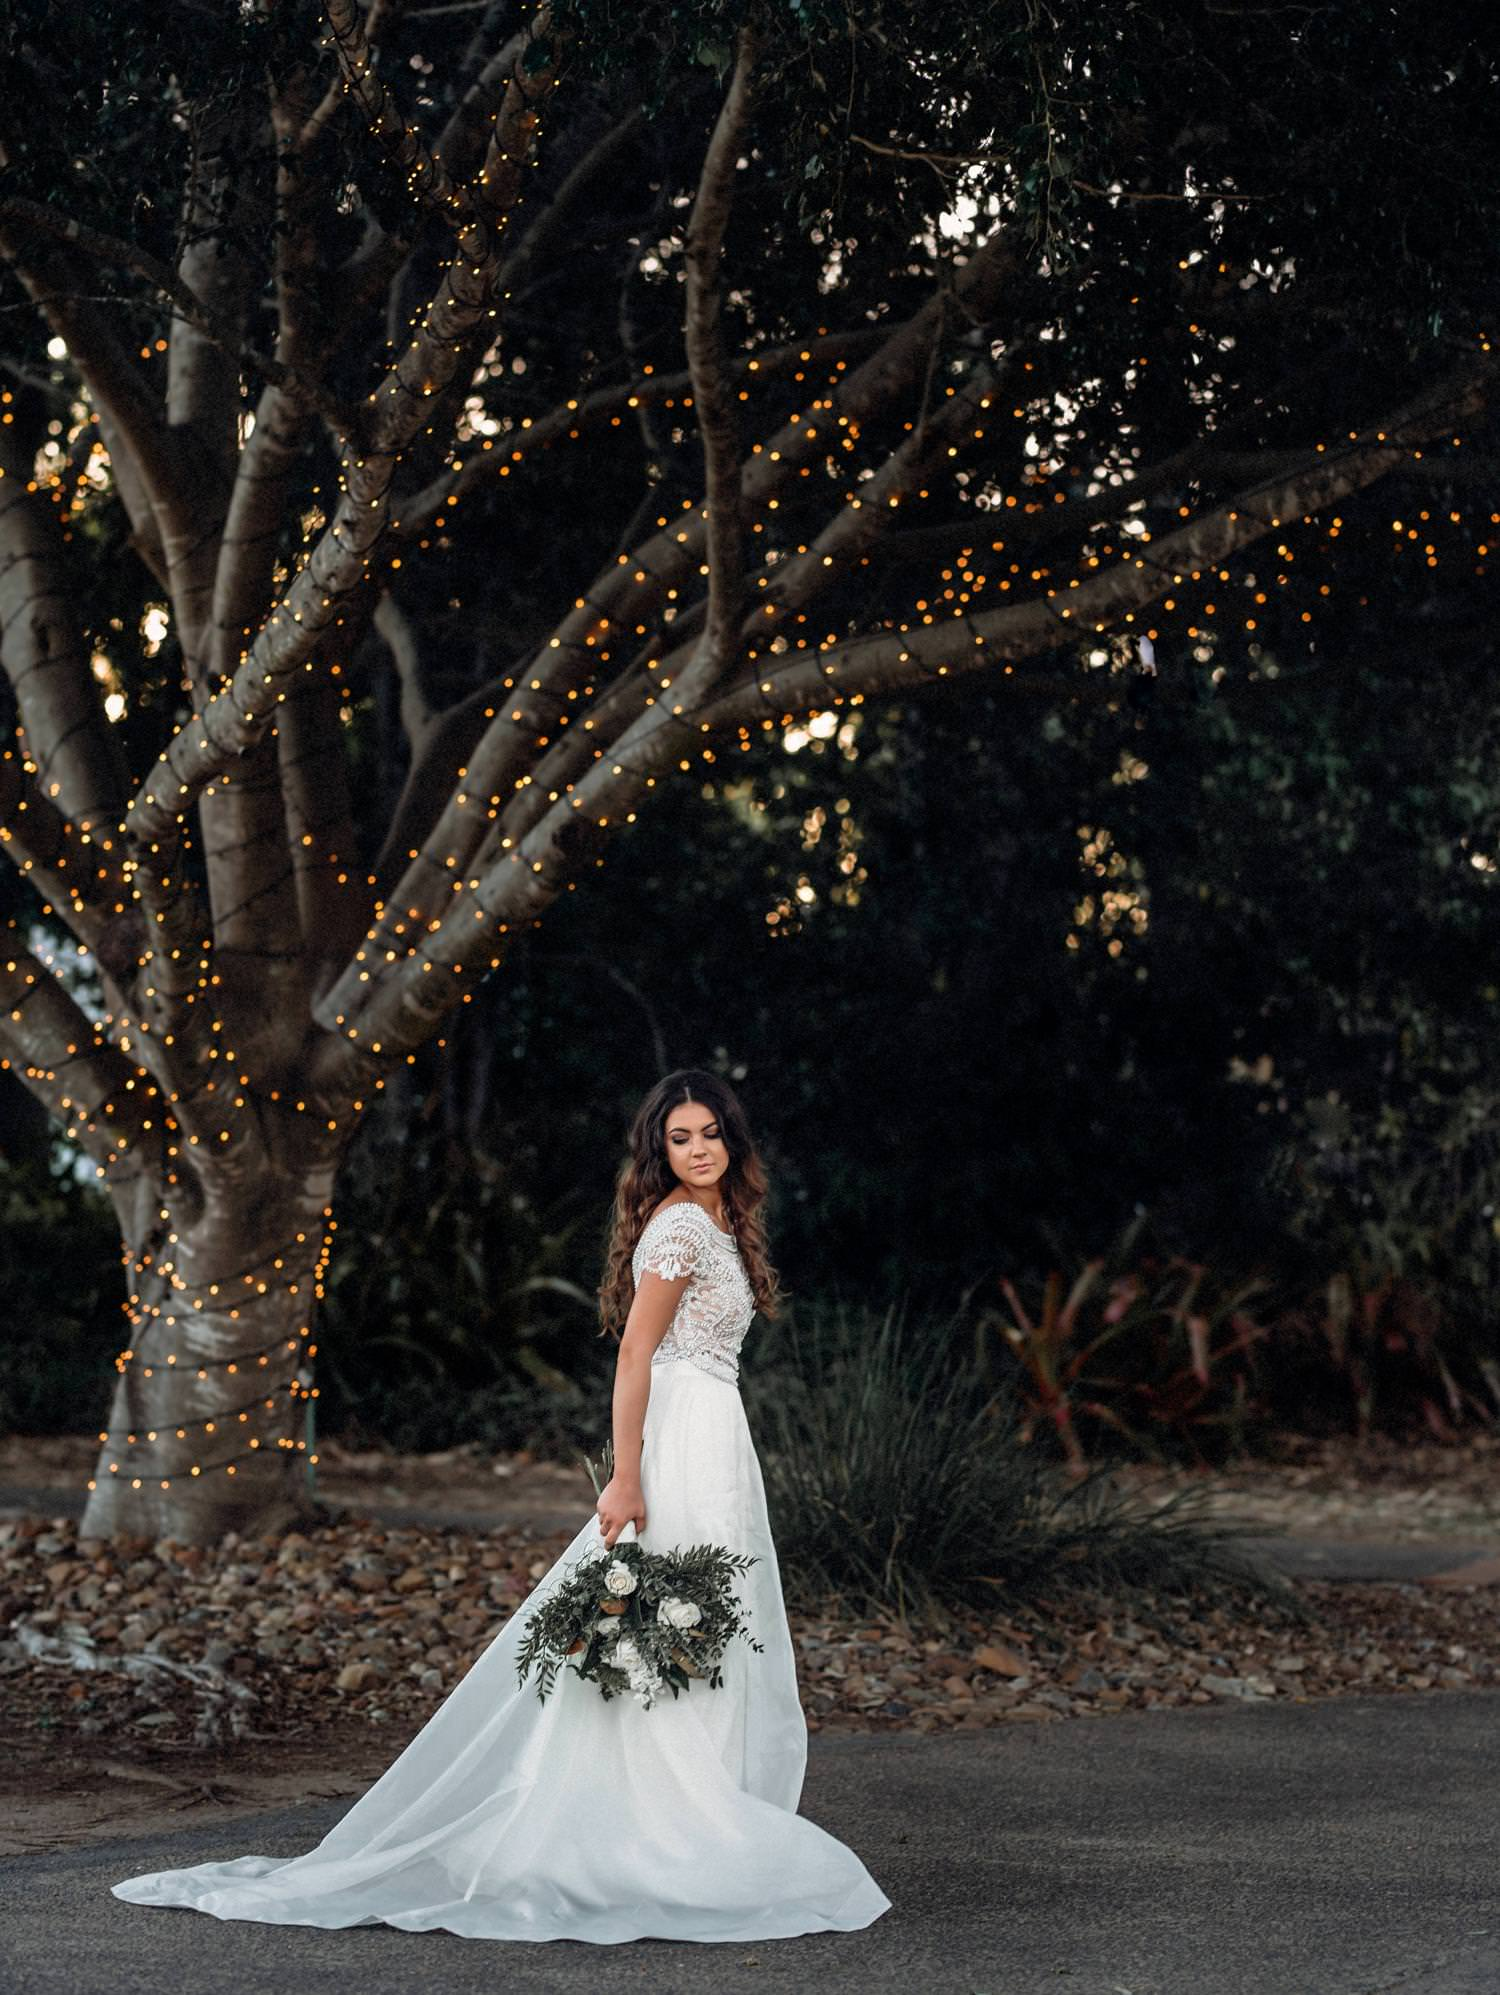 Bride under tree with Fairy light